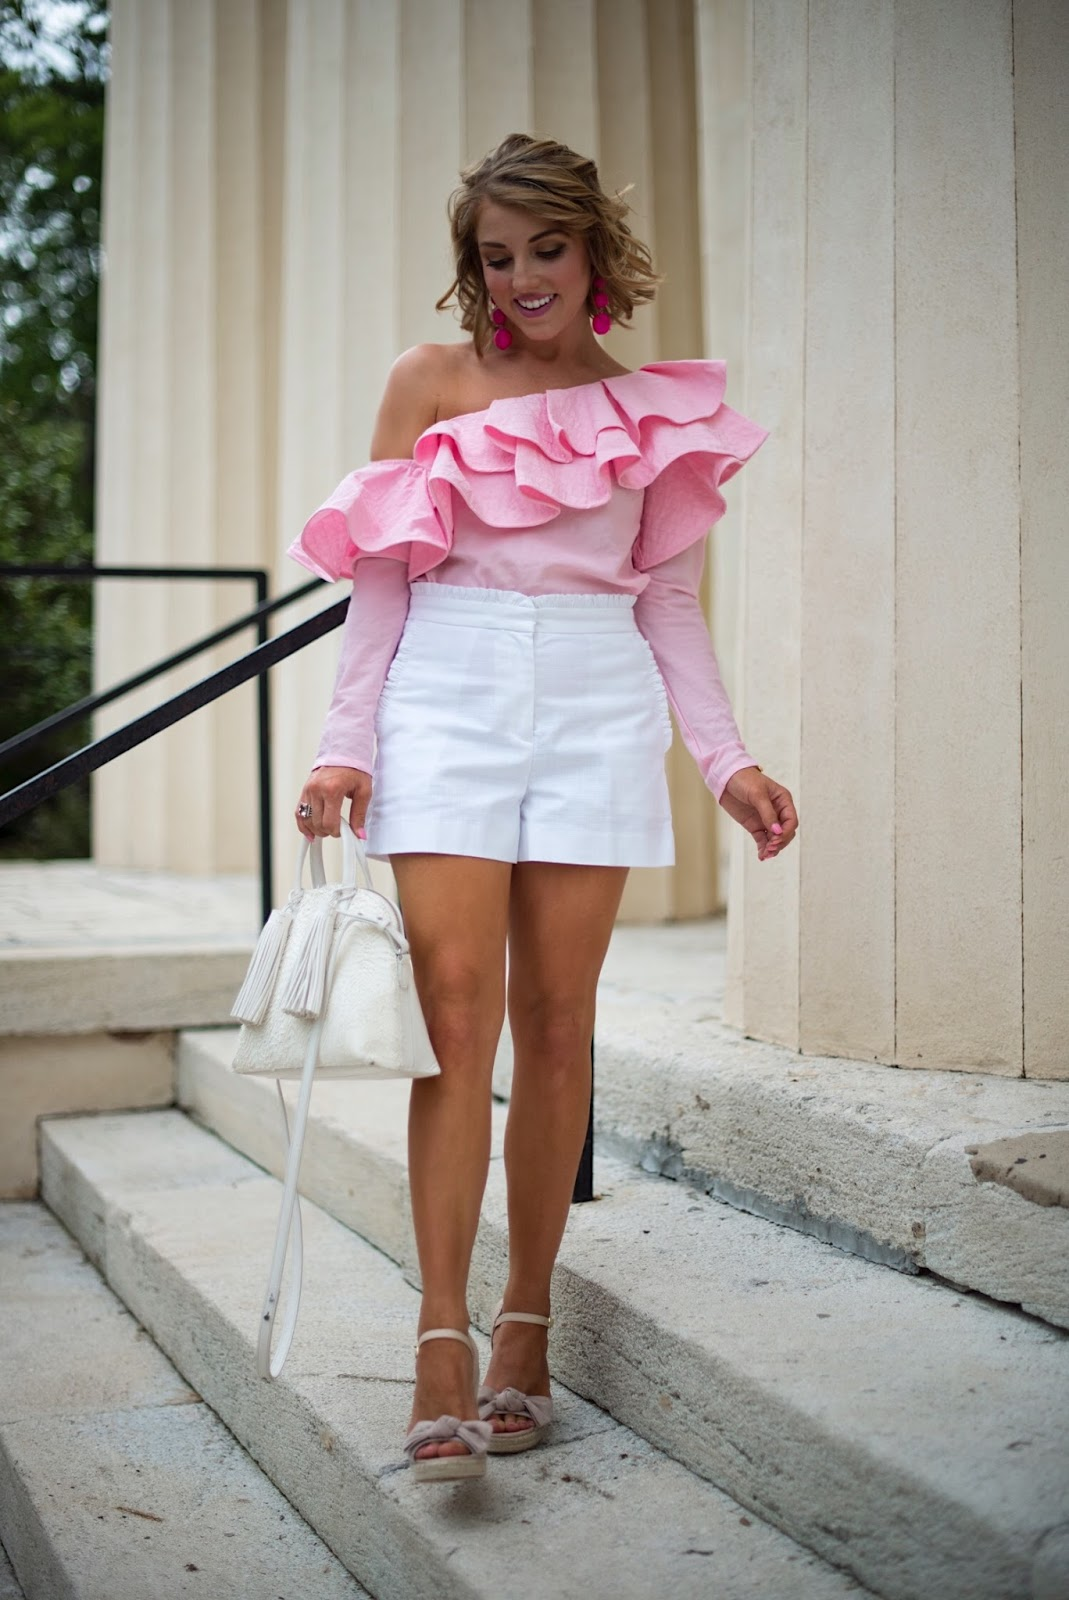 J.Crew Ruffle Shorts - Click through to see more on Something Delightful Blog!